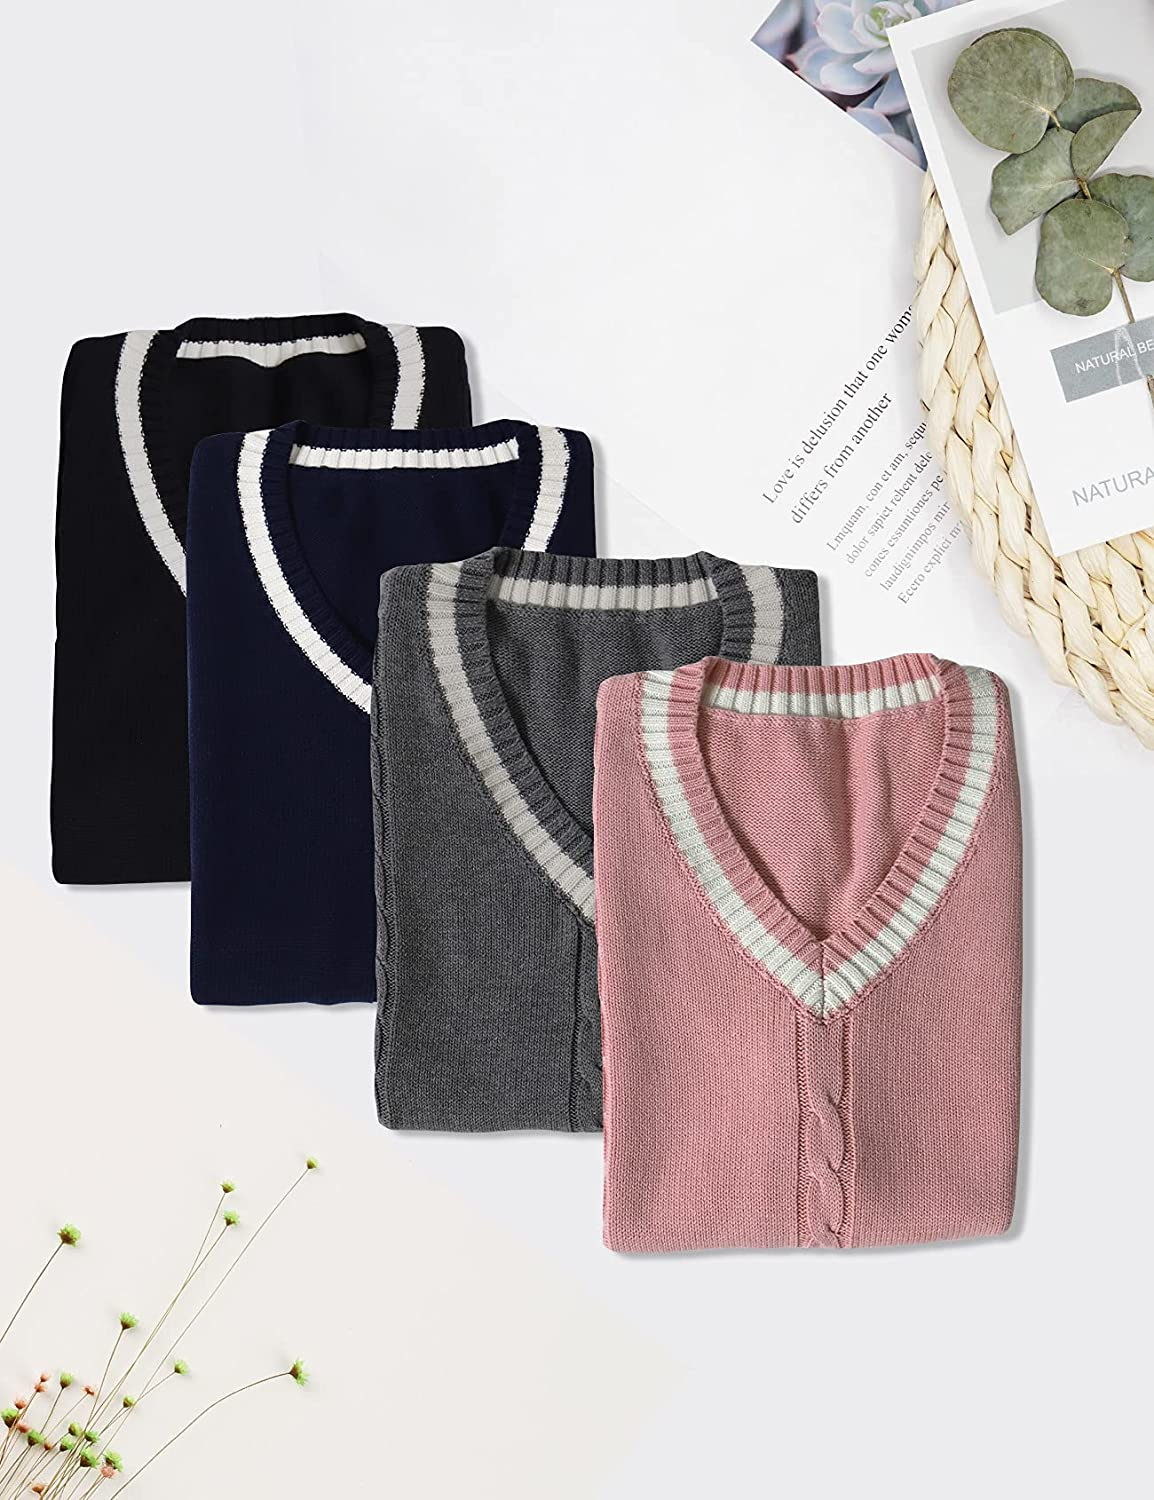 Gihuo Women's V Neck Sweater Vest Uniform Cable Knit Sleeveless Sweater